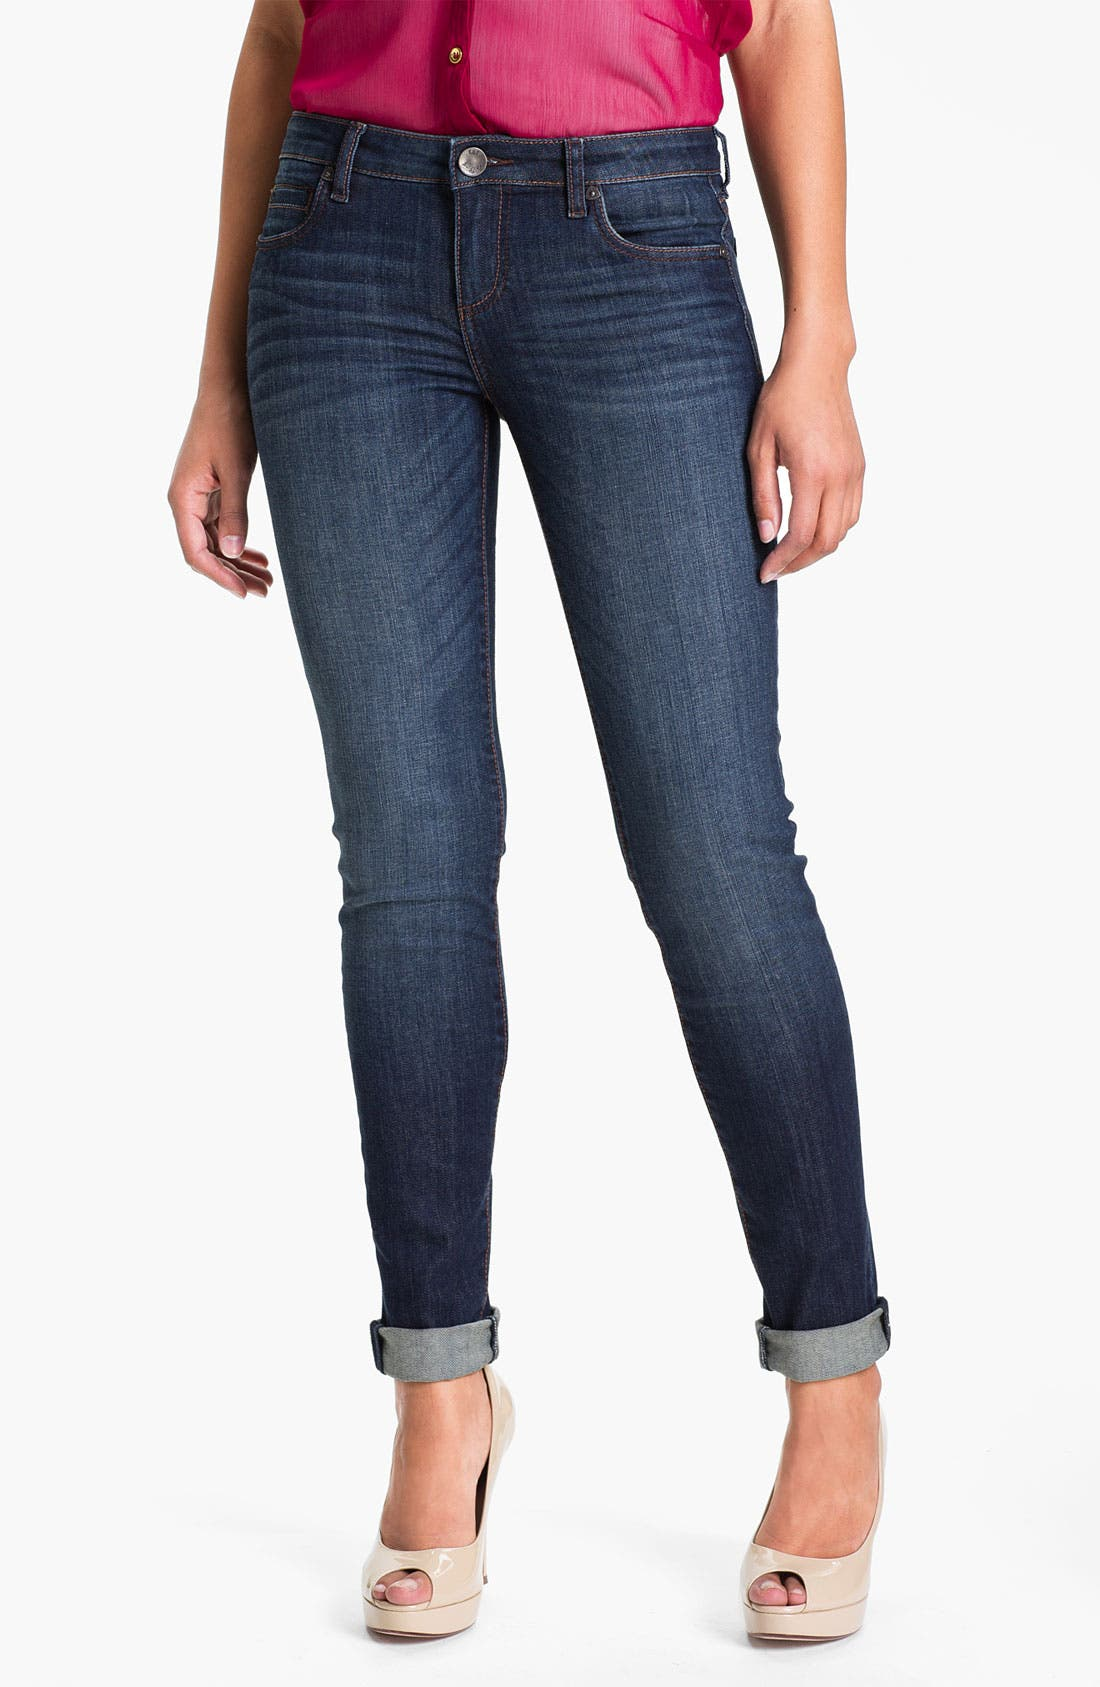 Alternate Image 1 Selected - KUT from the Kloth 'Diana' Skinny Jeans (Wise) (Online Only)